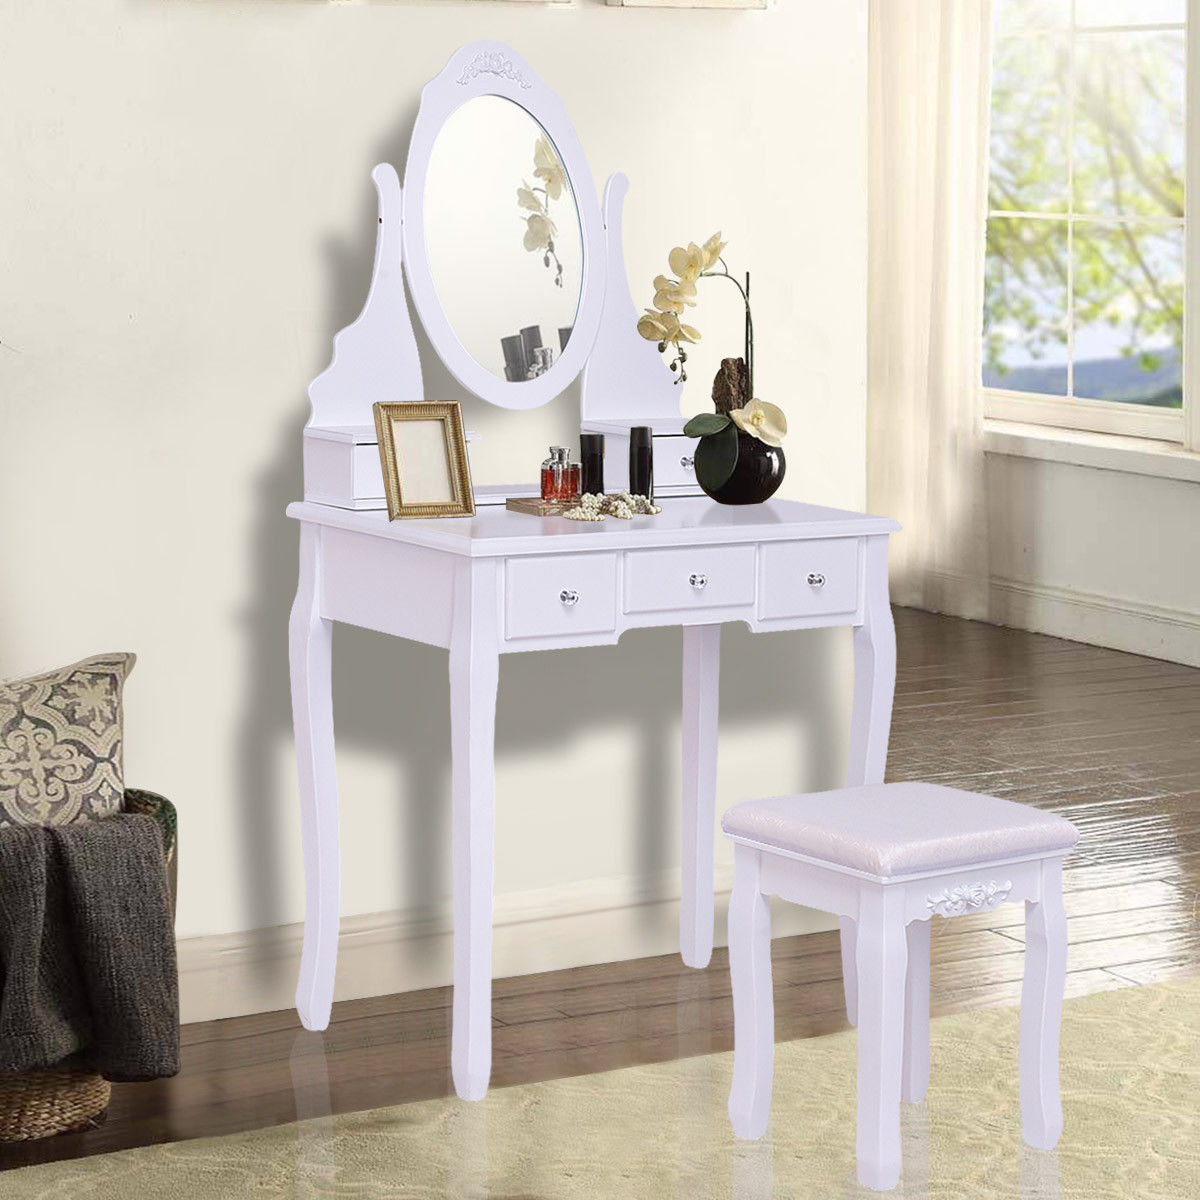 Giantex White Vanity Jewelry Wooden Makeup Dressing Table Set with Stool Mirror & 5 Drawers Modern Bedroom Dressers HW55564 ship from germany makeup dressing table with stool 7 drawers adjustable mirrors bedroom baroque style